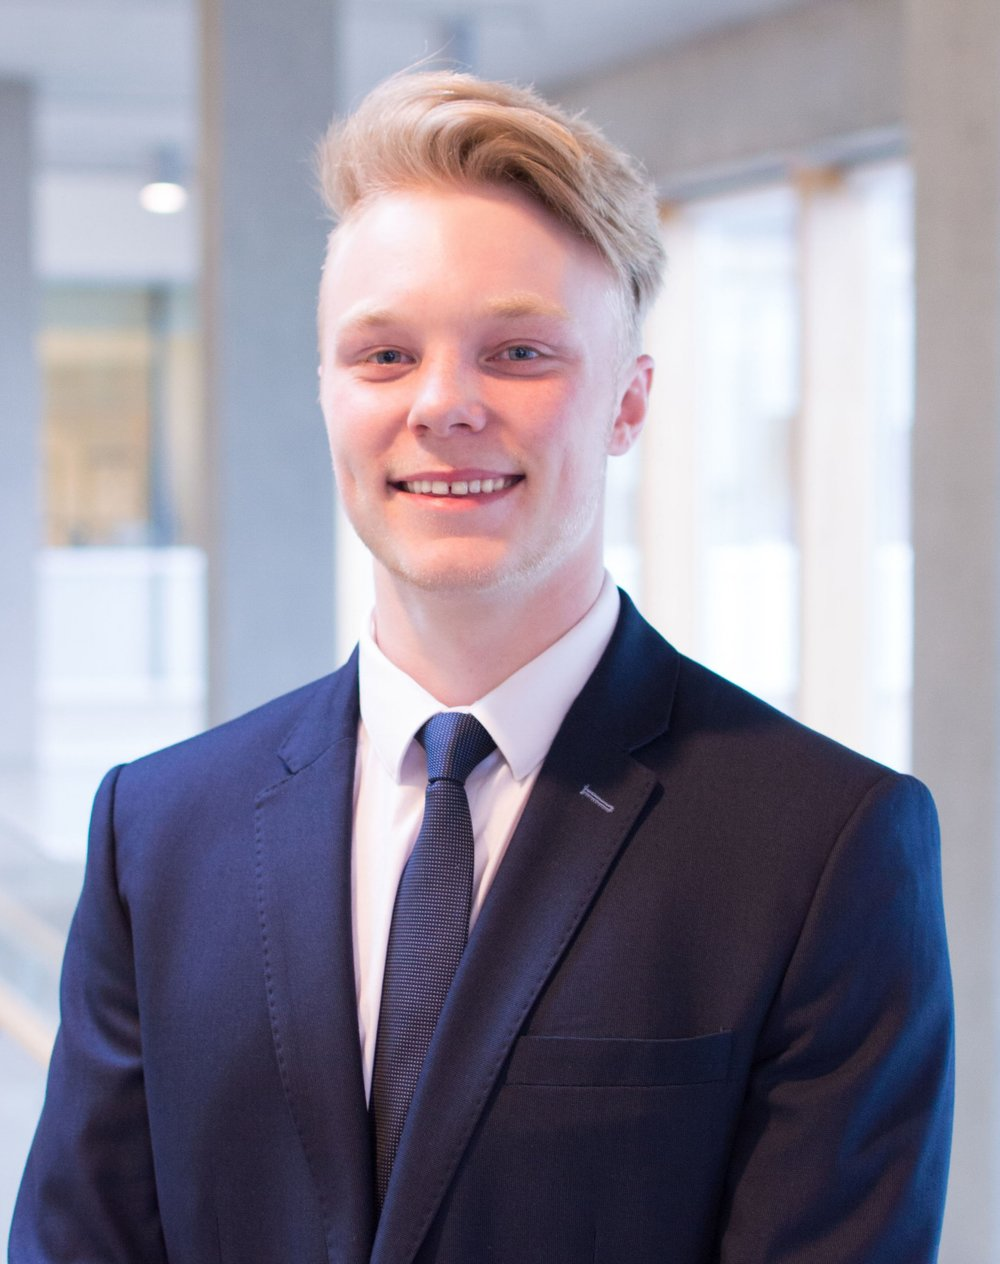 Tyler Halverson Position: Corporate Relations Coordinator Year: 2 Concentration: Accounting and Finance One Emoji that describes you and why: 💪🏻 describes me because I am always doing some sort of sport or physical activity. What are you excited to do you in your term? I'm excited to get make some great connections and relationships with industry professionals, and make events possible by getting the funding from companies. As well, I am super excited to make continuing friendships and relationships with the BASS members.